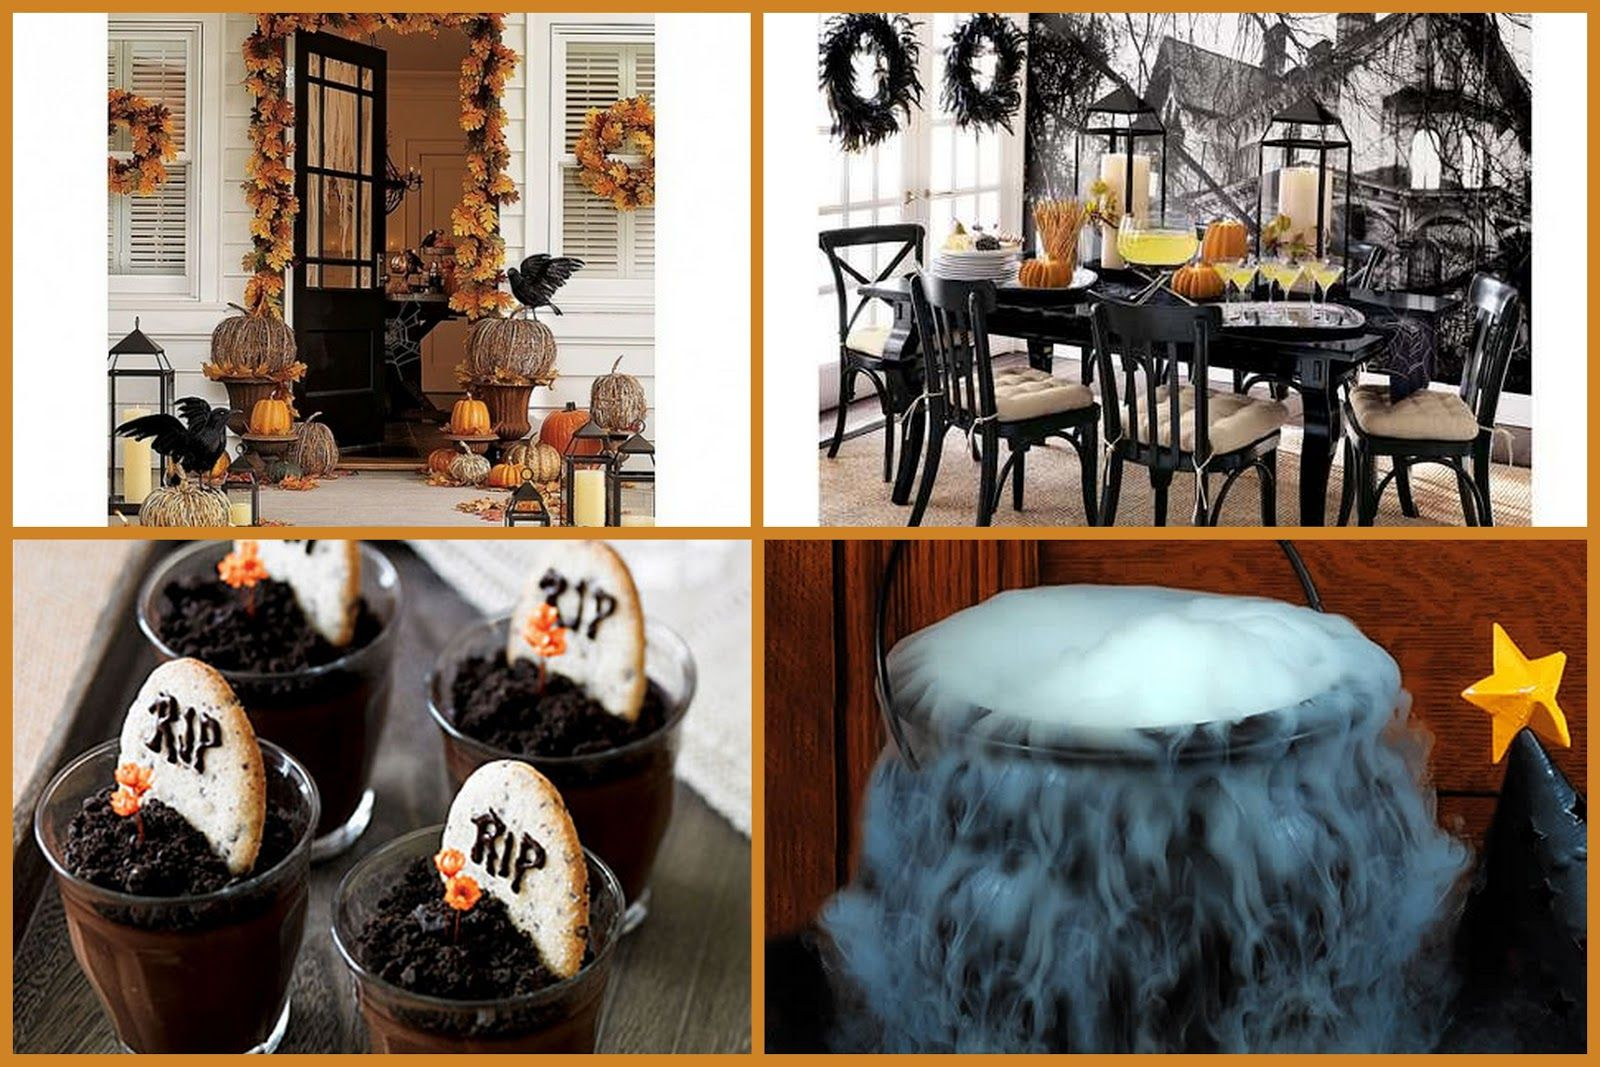 halloween decorating ideas | Decorating Ideas Exciting Halloween Decorations For Homes  Stunning . & halloween decorating ideas | Decorating Ideas Exciting Halloween ...